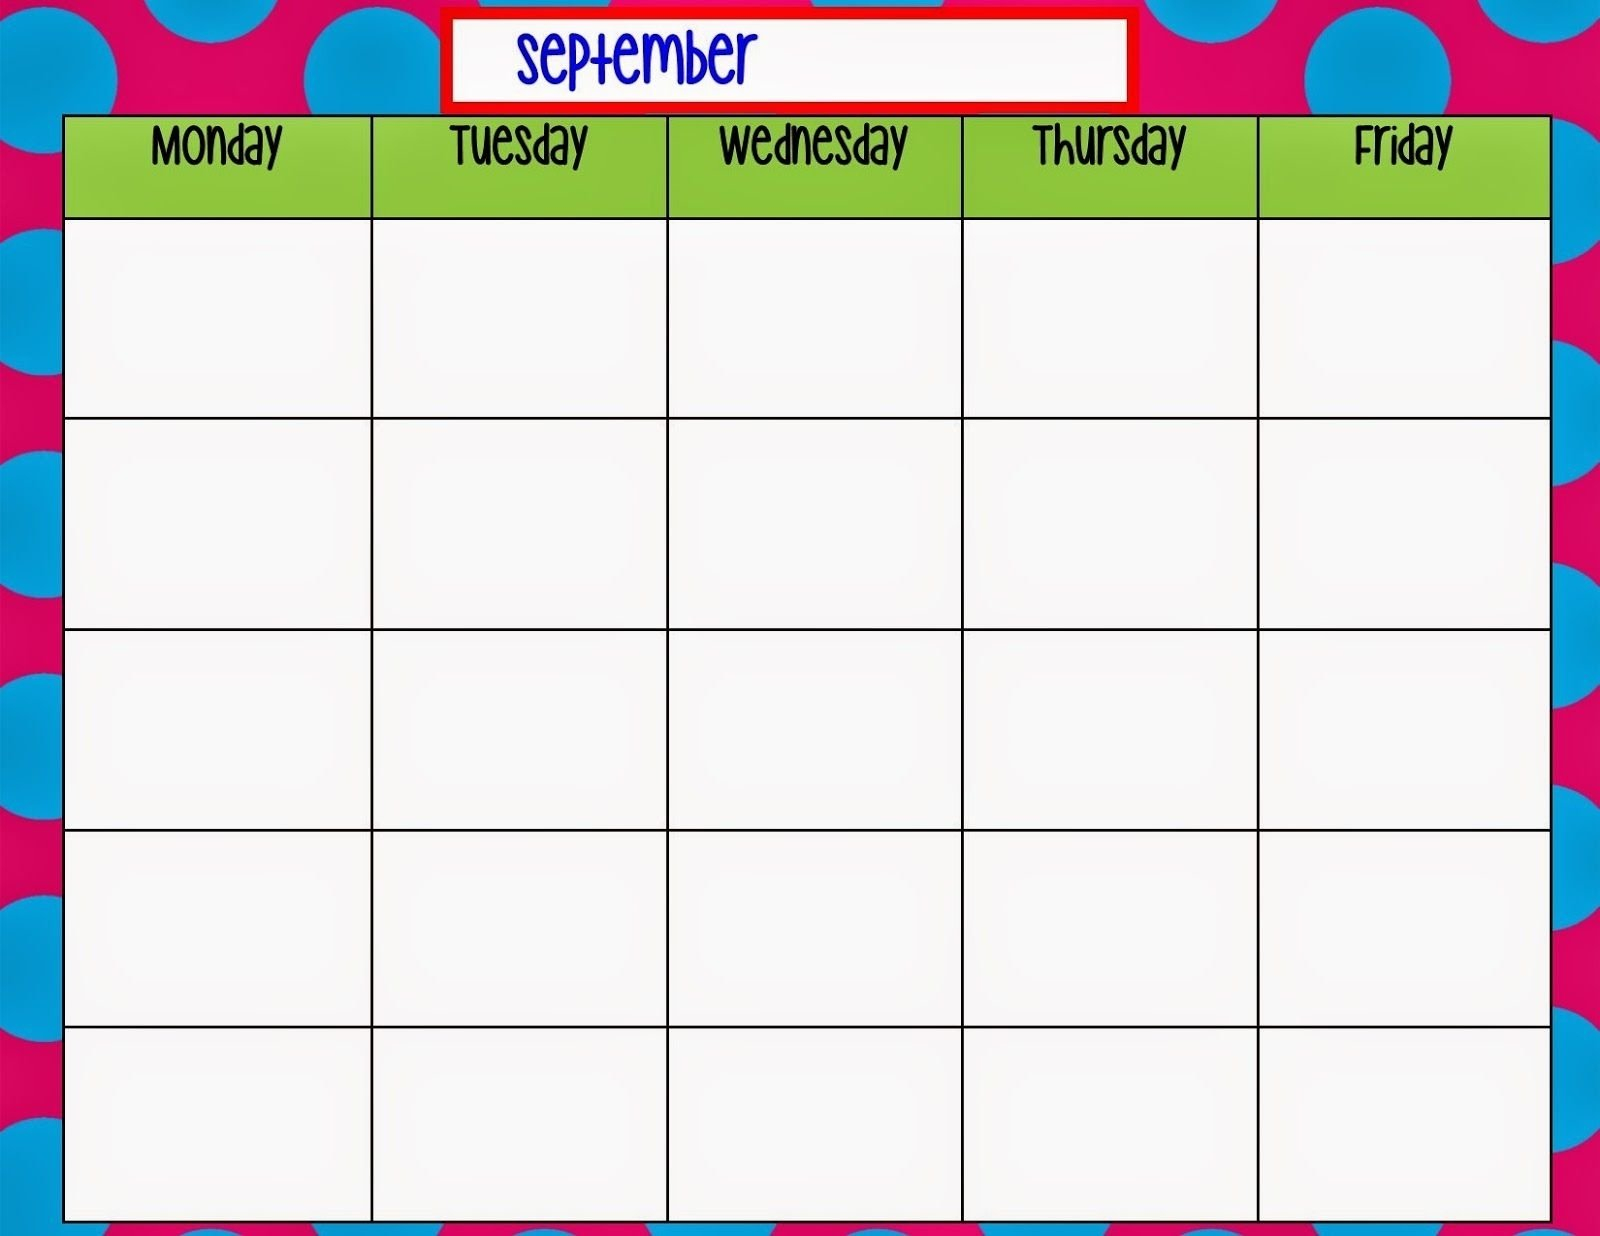 Monday To Friday Schedule Printable – Calendar Inspiration Blank Monday To Friday Timetable